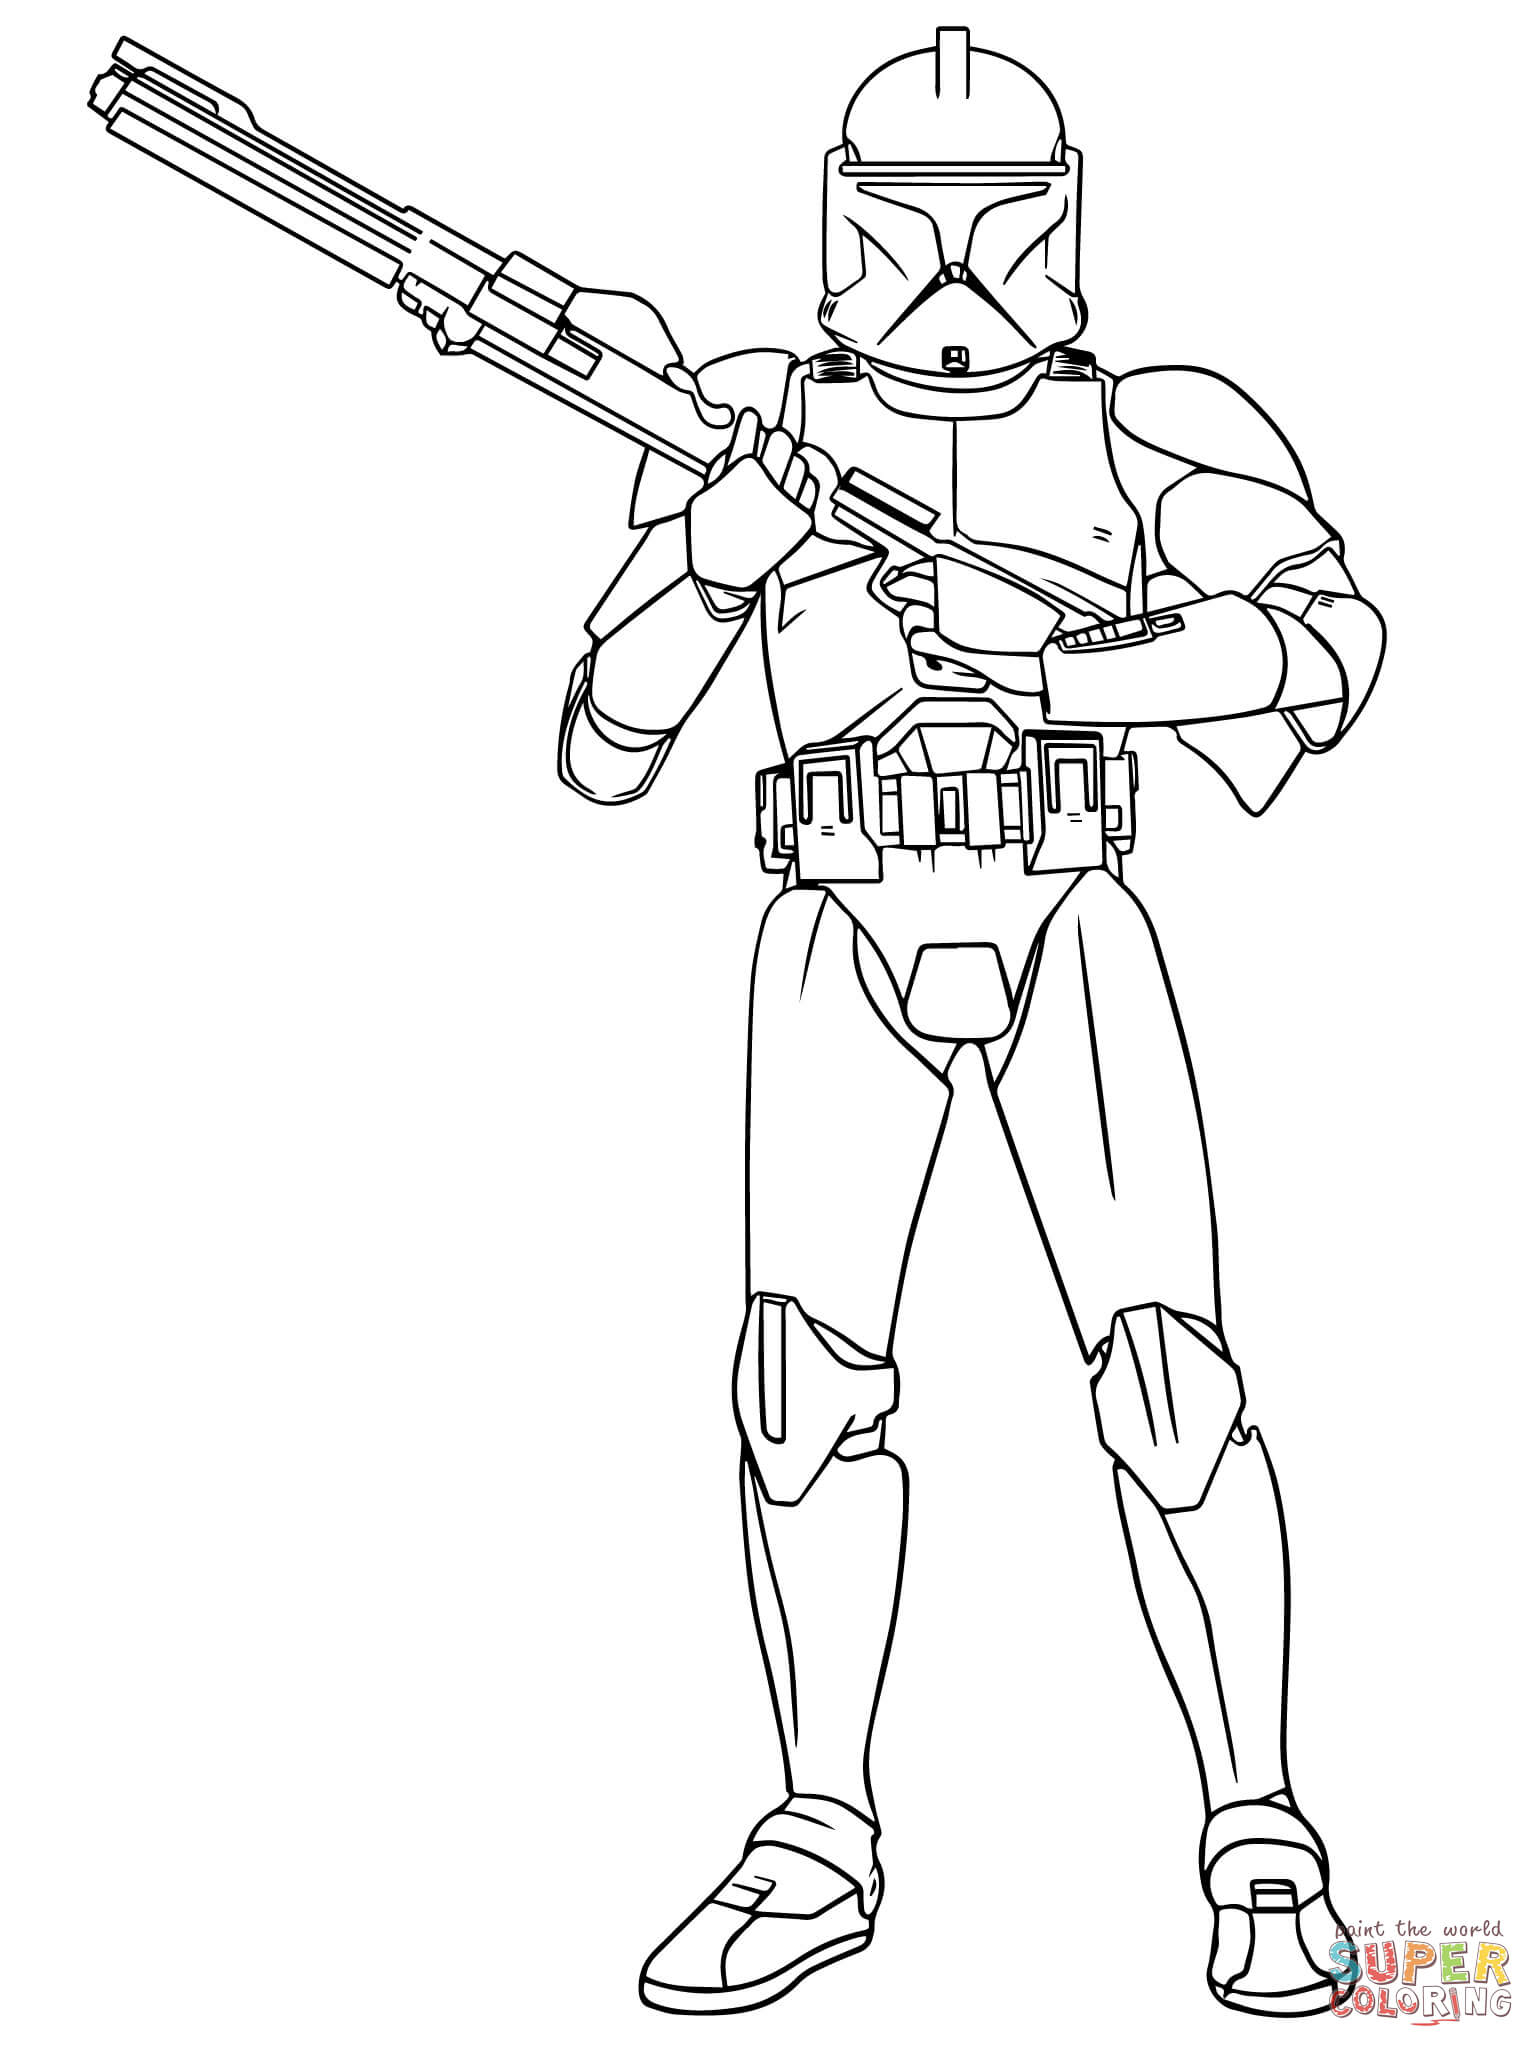 Stormtrooper Coloring Page Stormtrooper In Action Coloring Page Free Printable Coloring Pages